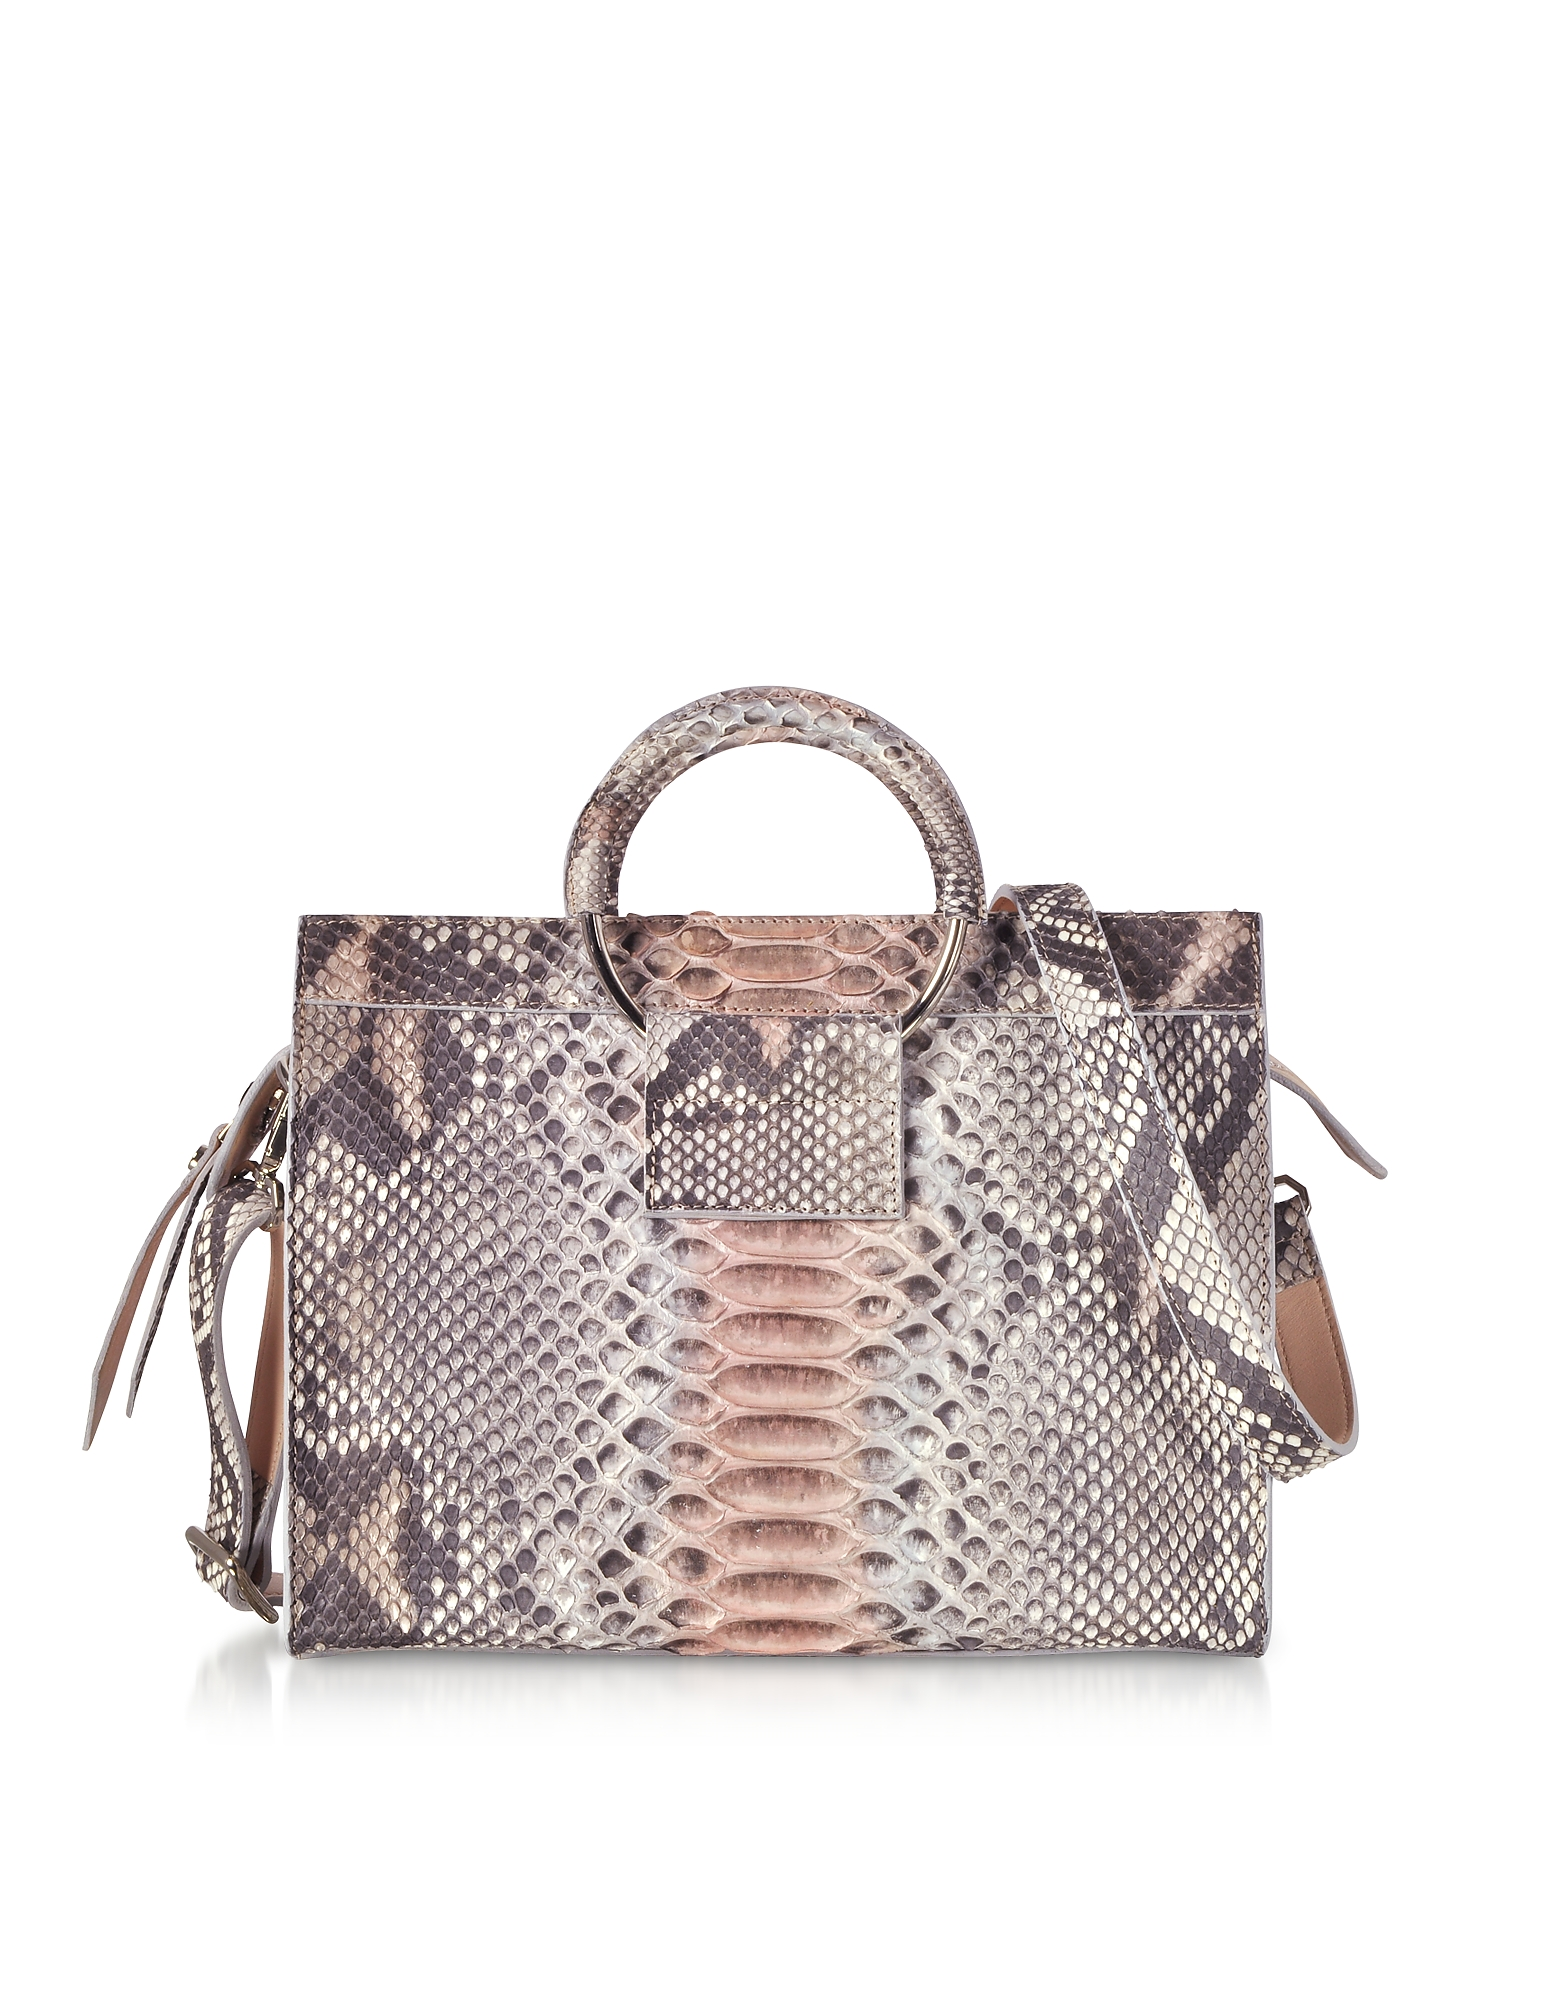 Pearl Gray and Pale Pink Python Leather Small Satchel Bag w/Metal Handles